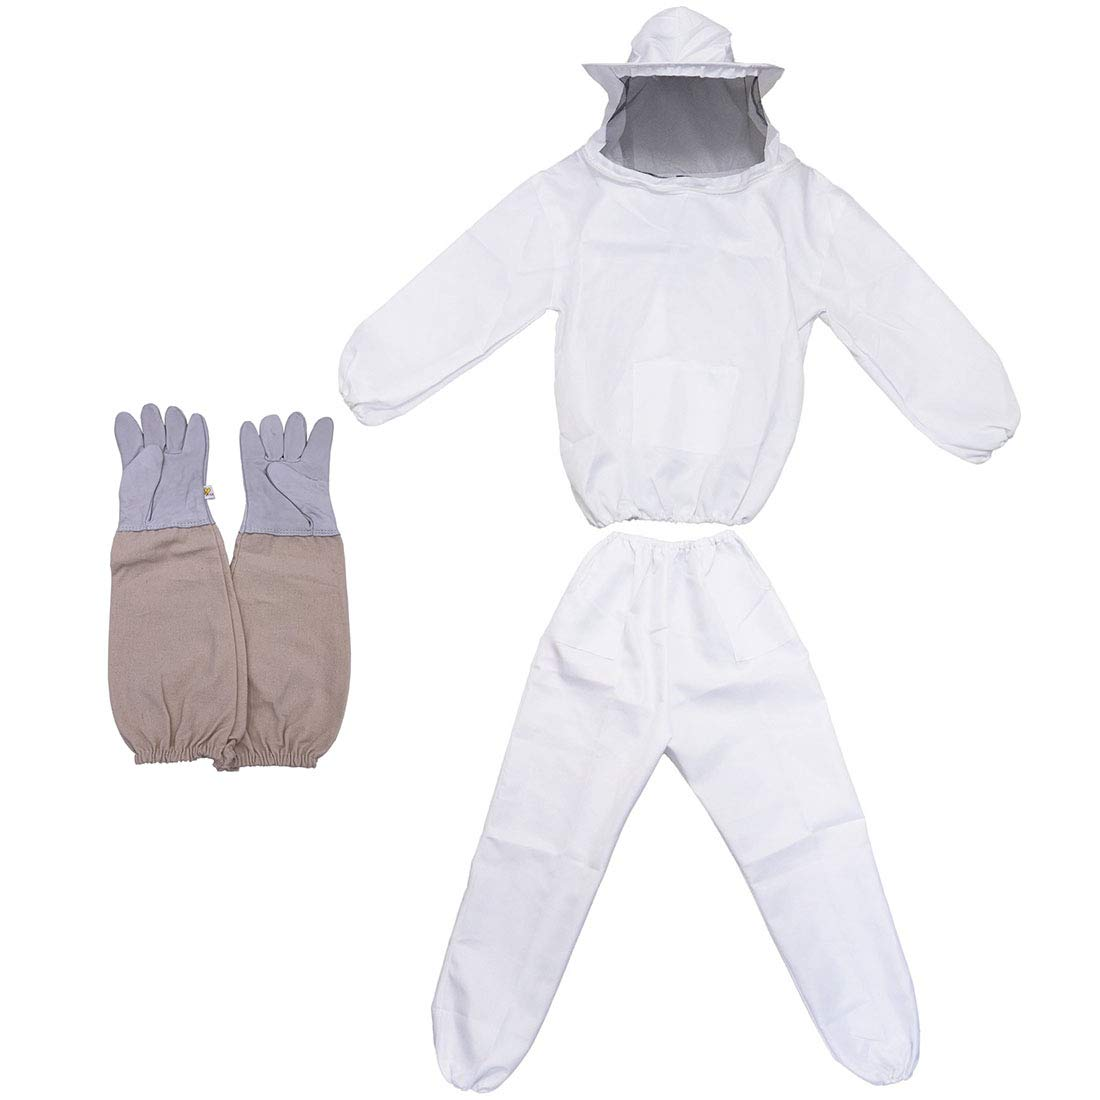 Bee Keeper Outfit, Bee Keeping Gear, Beekeeping Suit Protective with Veil Hood (Jacket, Pants, Gloves) White by MTH